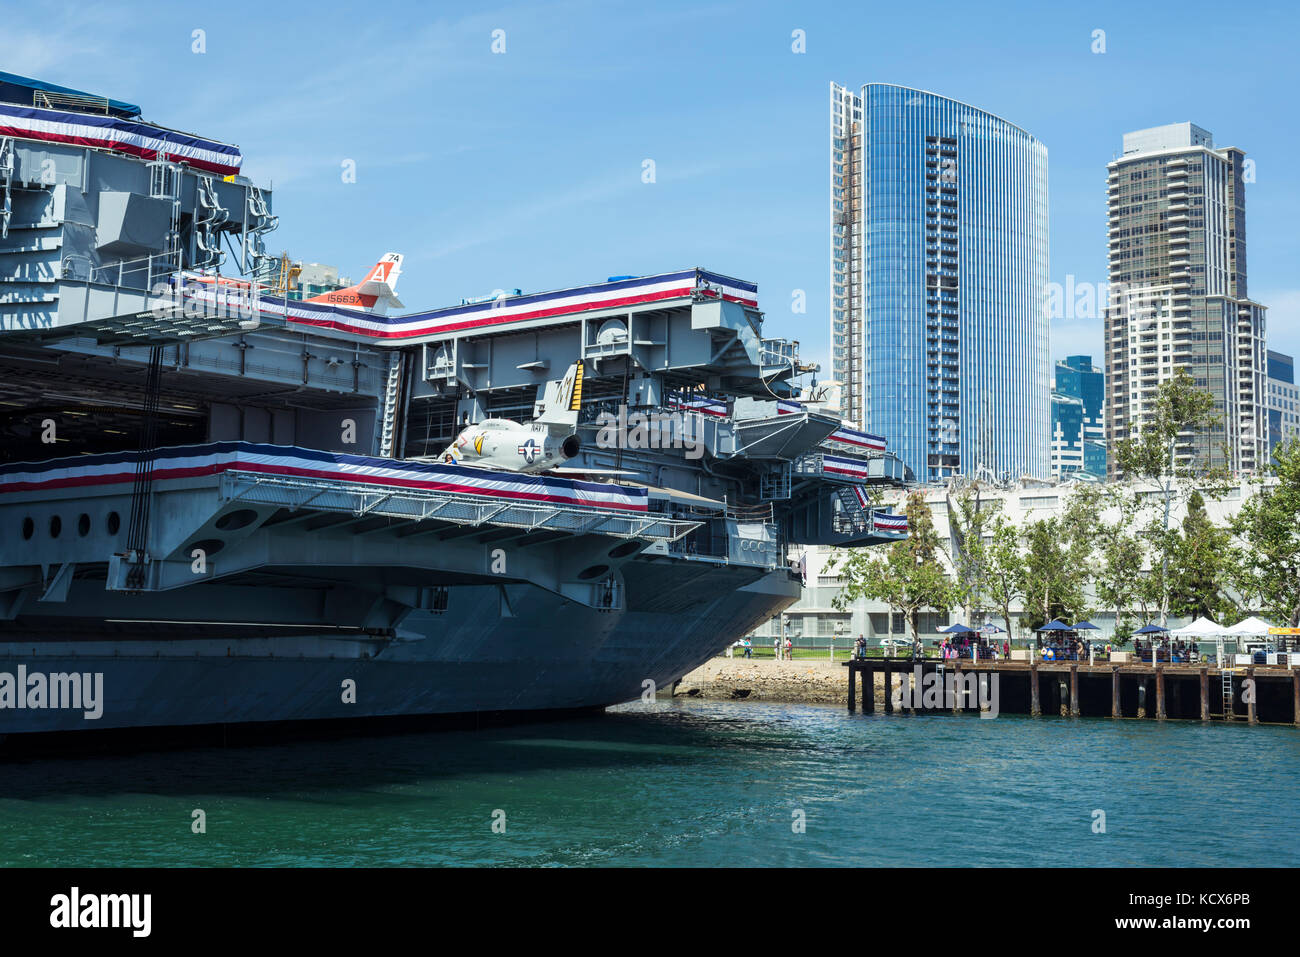 The USS Midway Museum Ship and downtown San Diego buildings. San Diego, California. Stock Photo